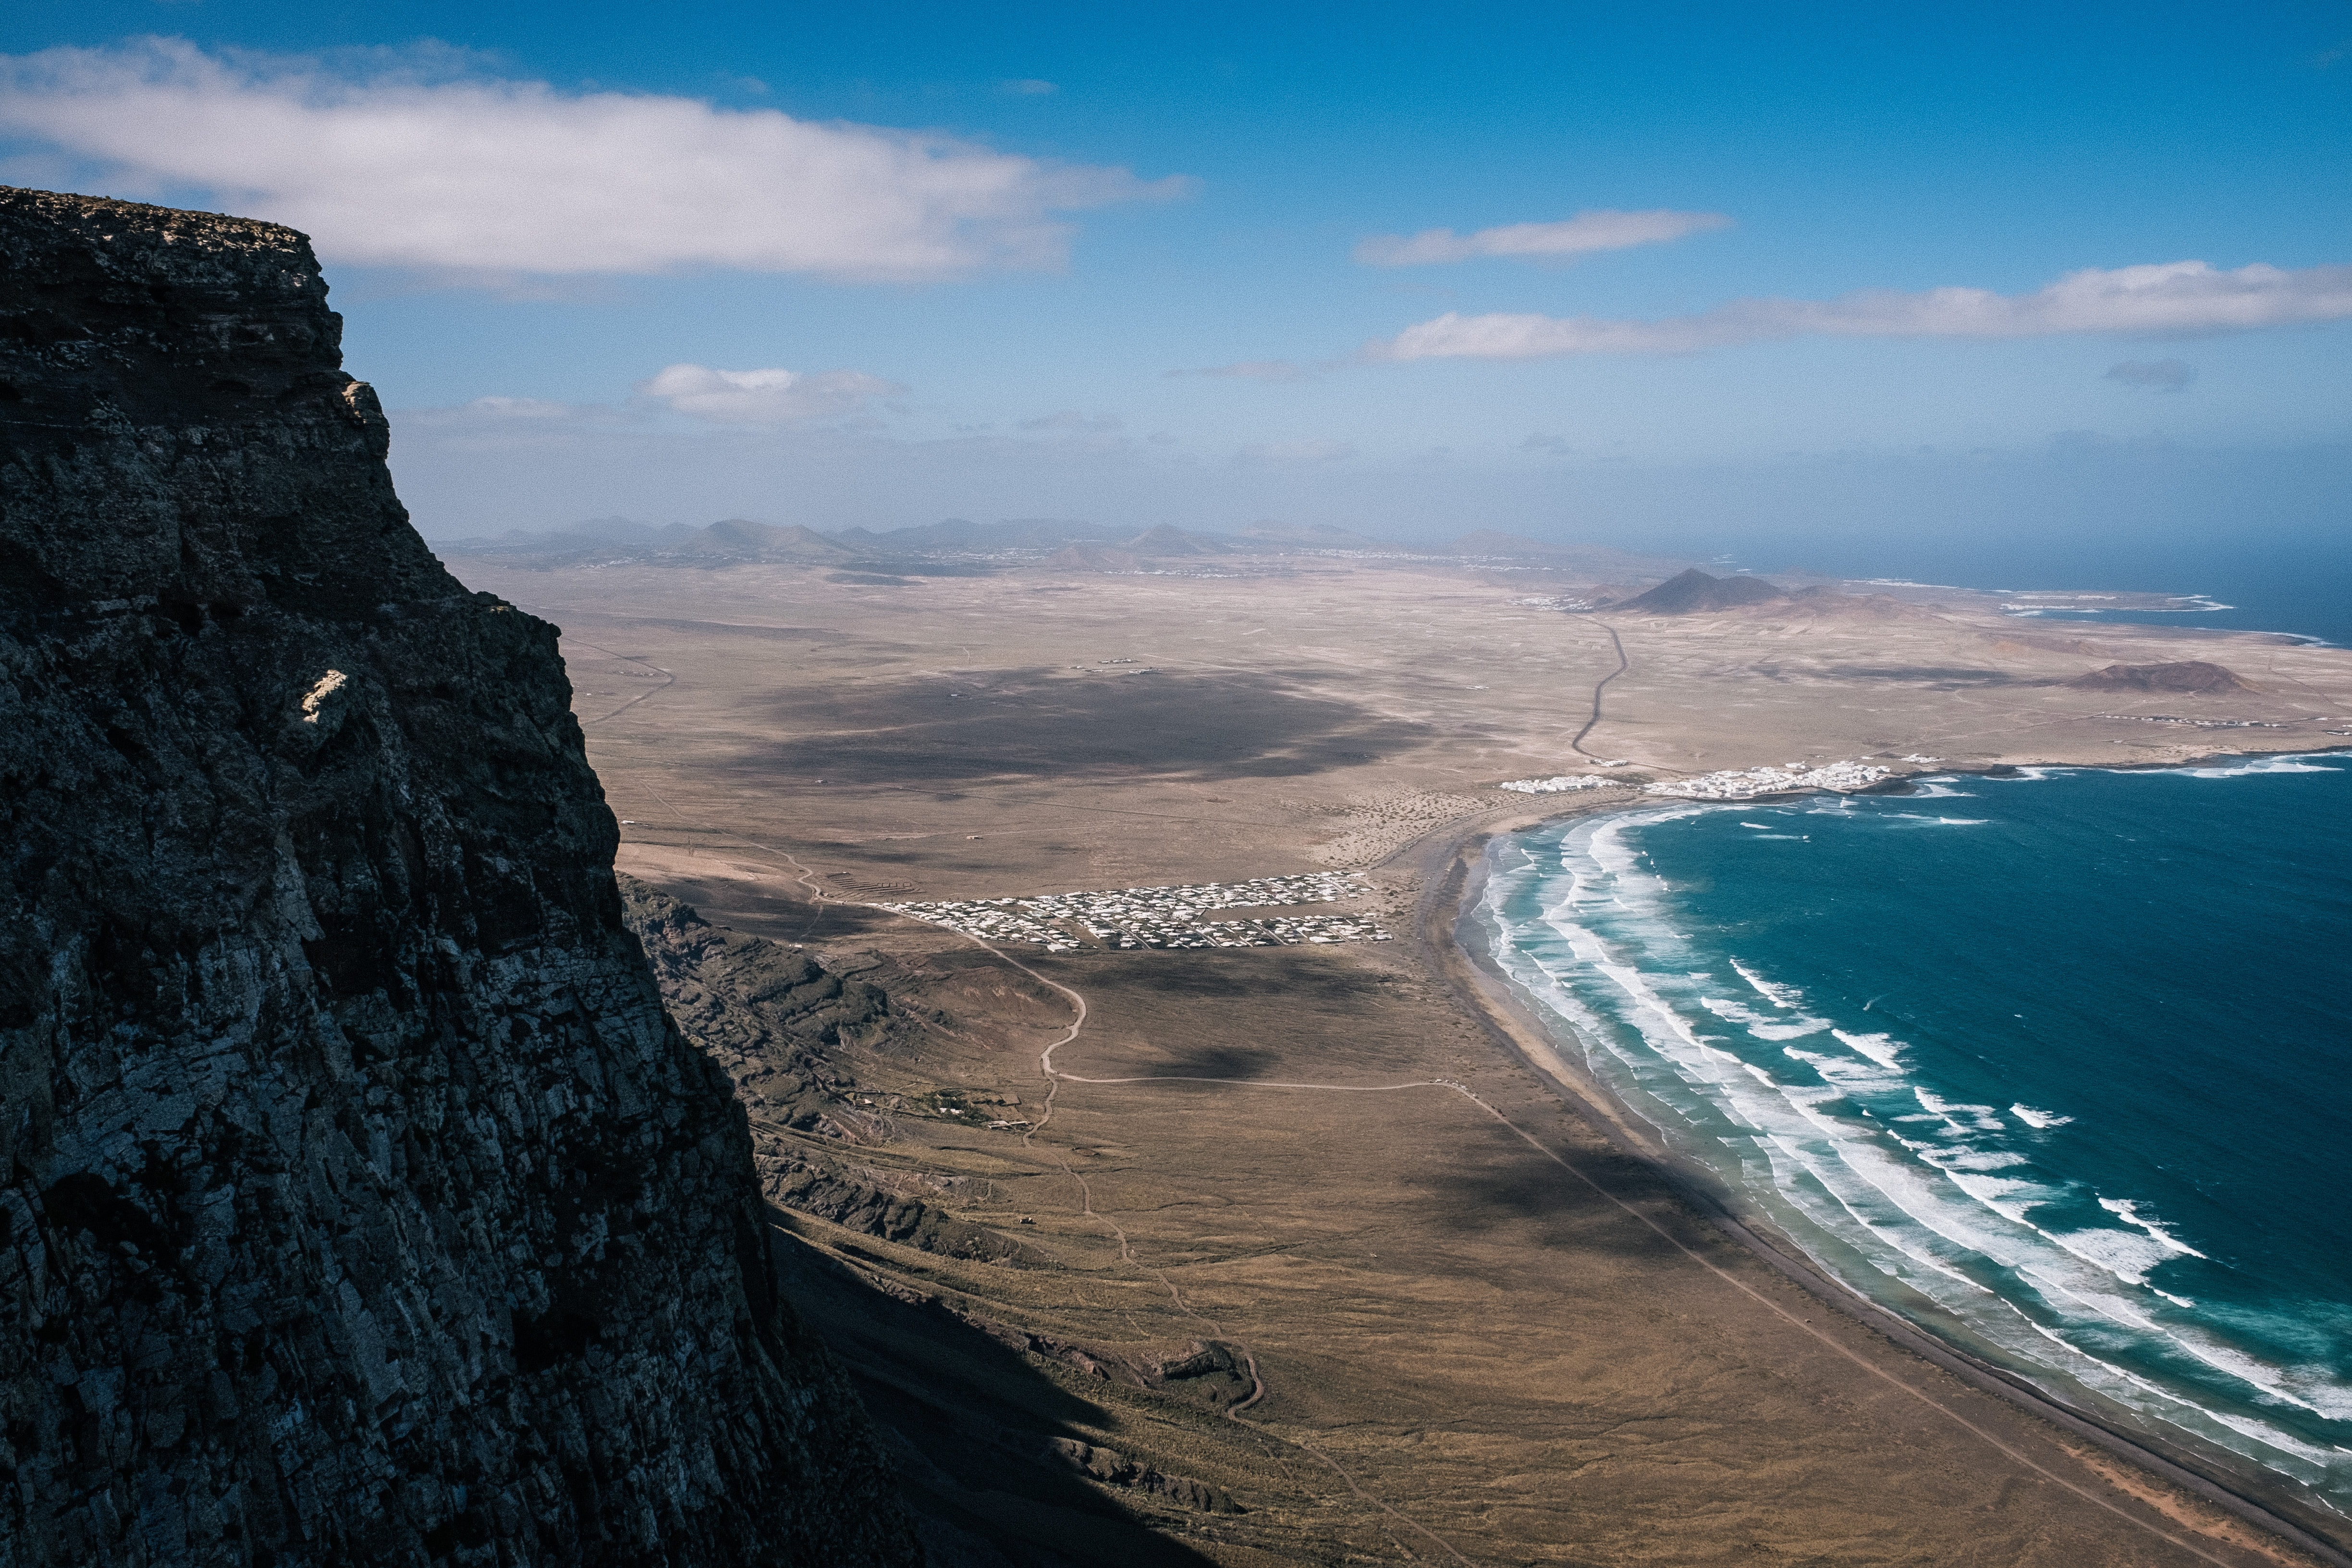 aerial photo of ocean in front mountain